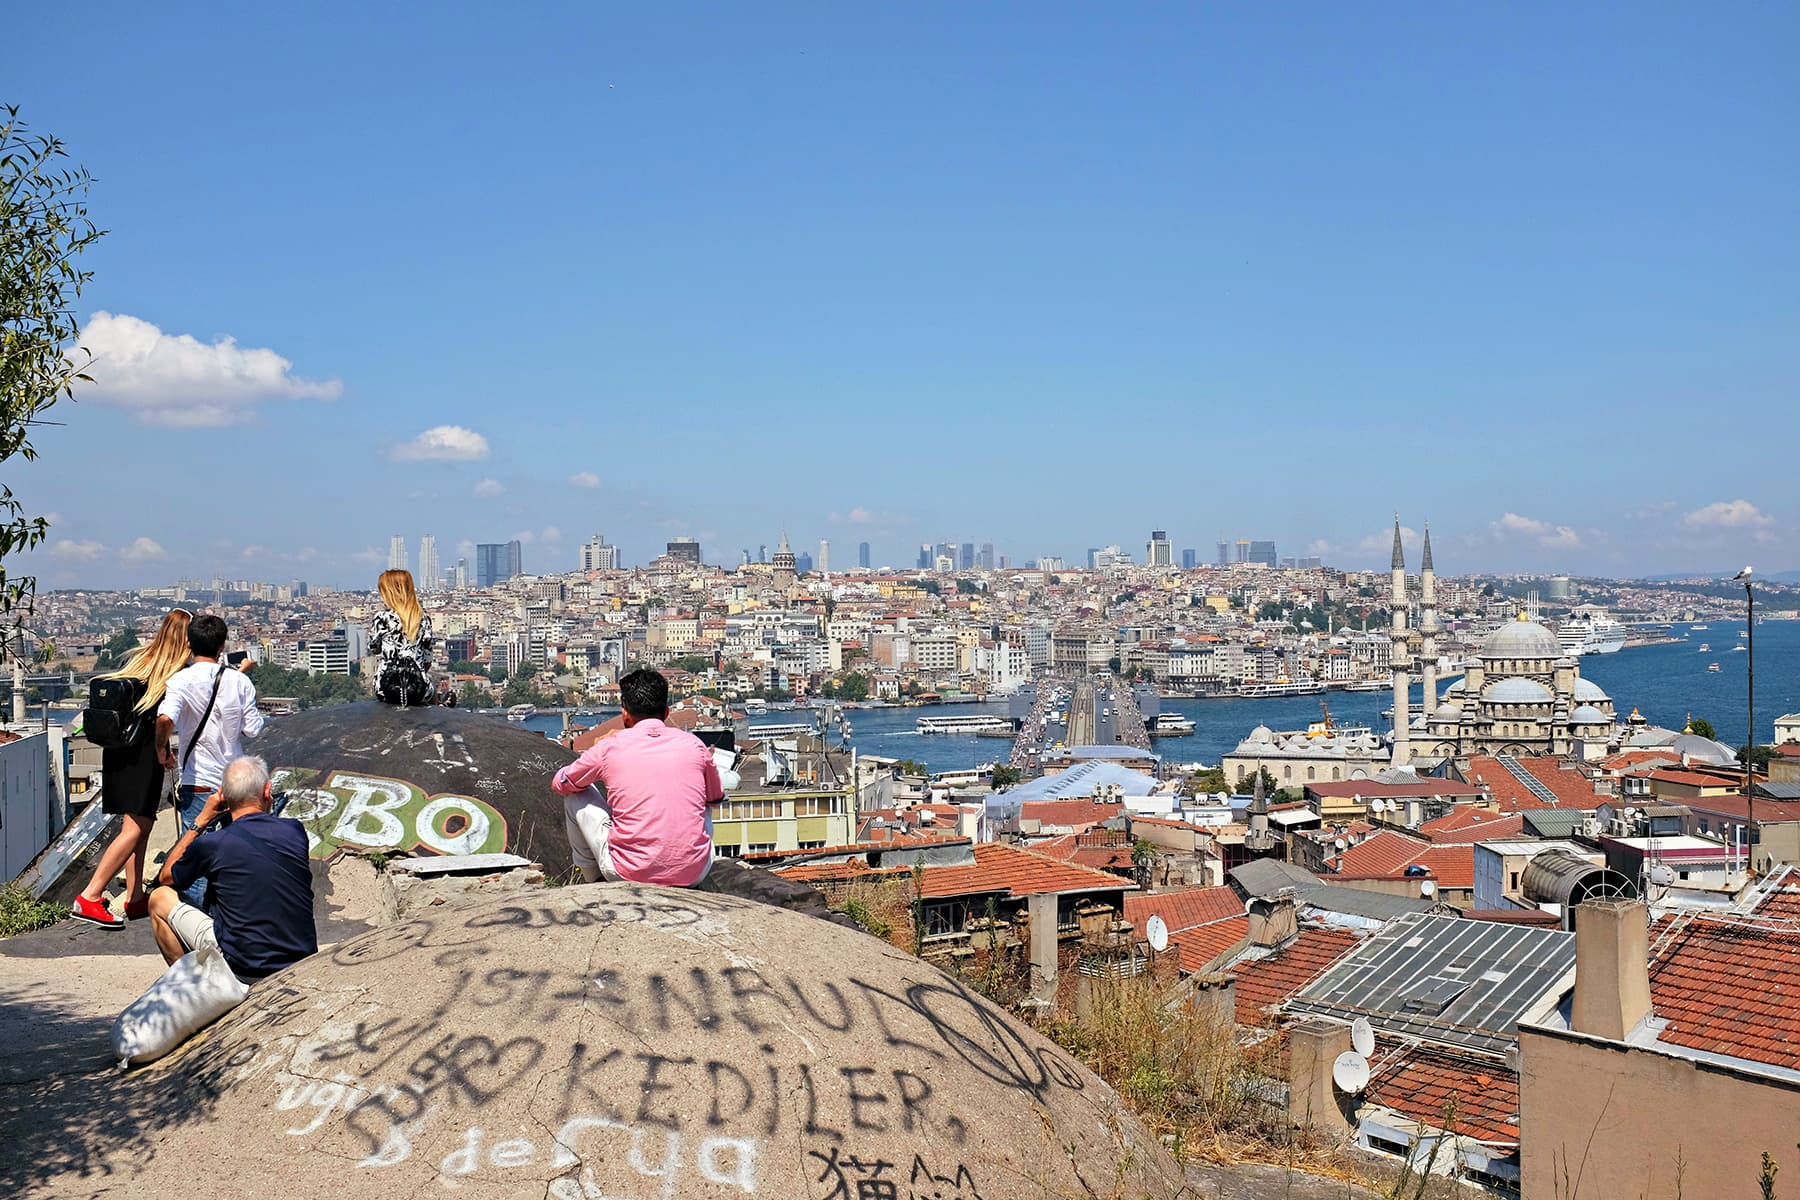 Another view from the rooftop of Grand Bazaar workshop.